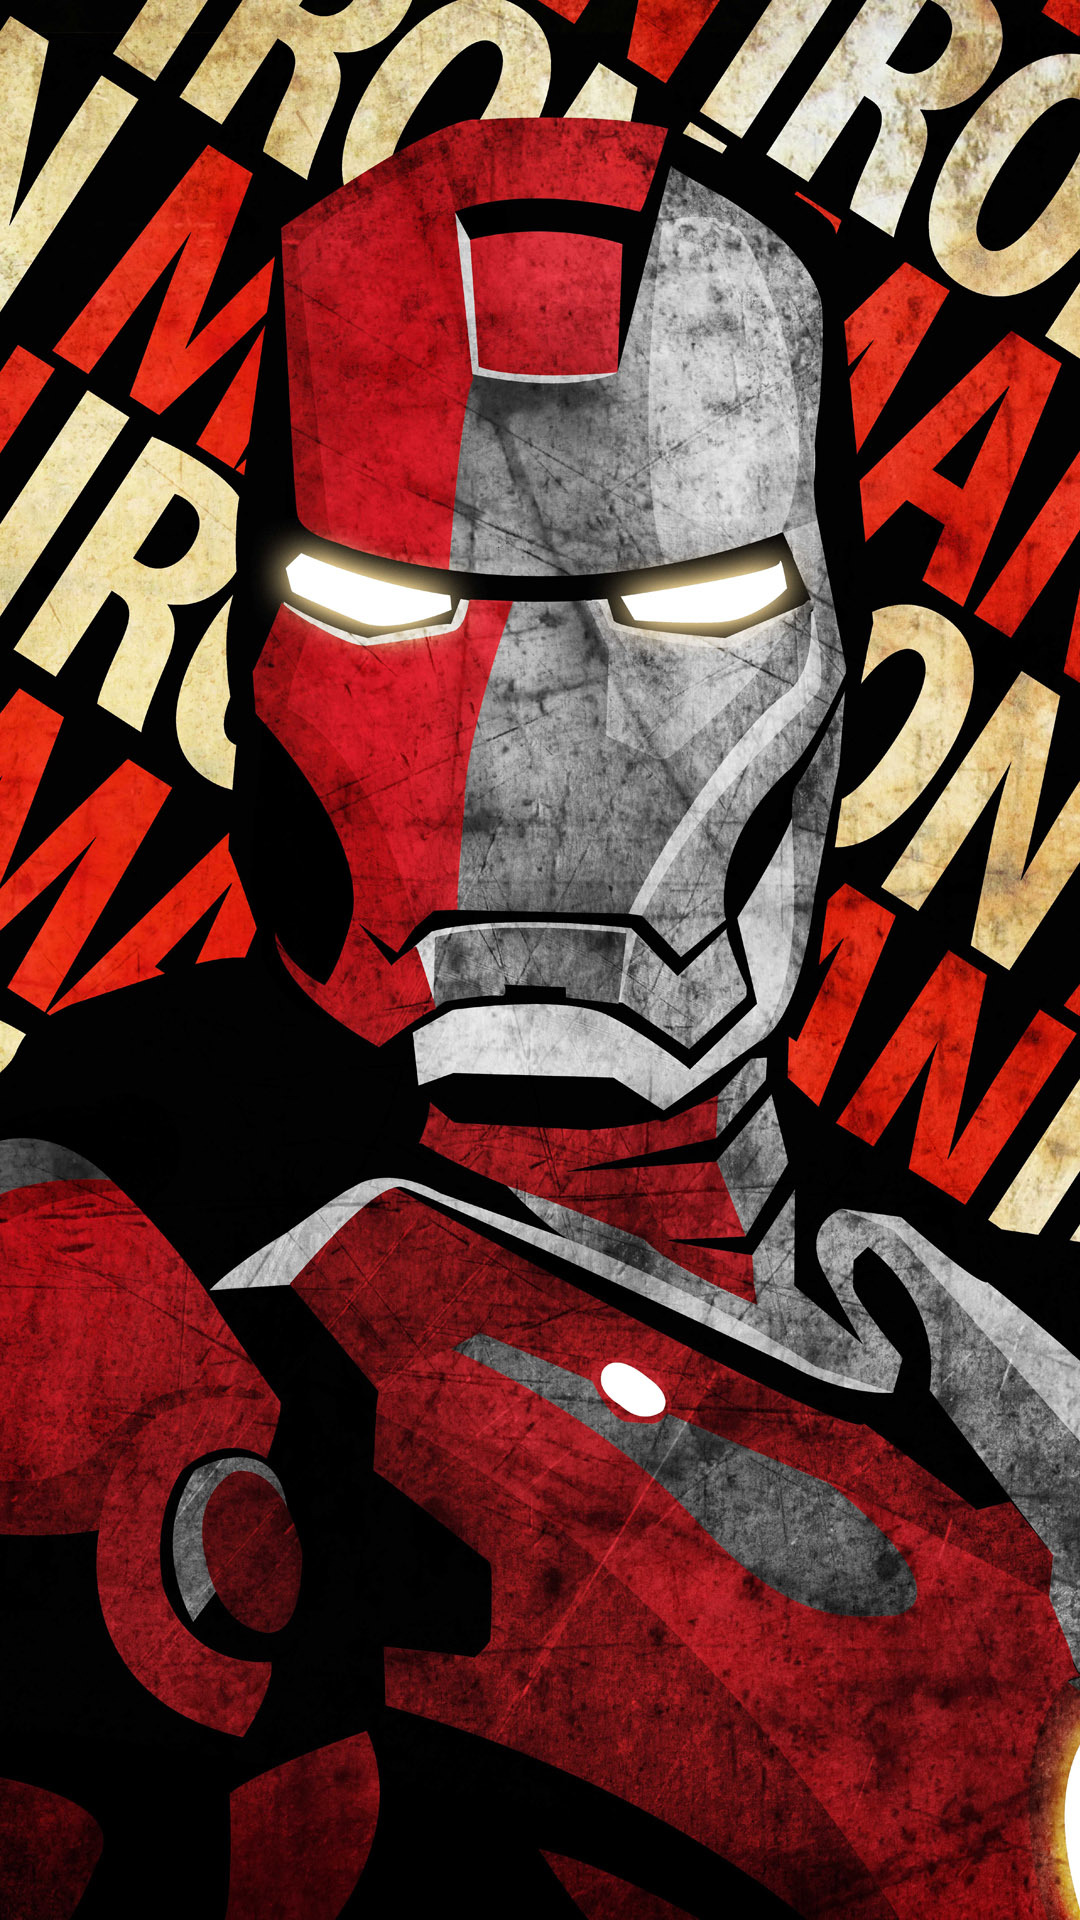 Htc One M8 Wallpaper Hd Iron Man Comic Best Htc One Wallpapers